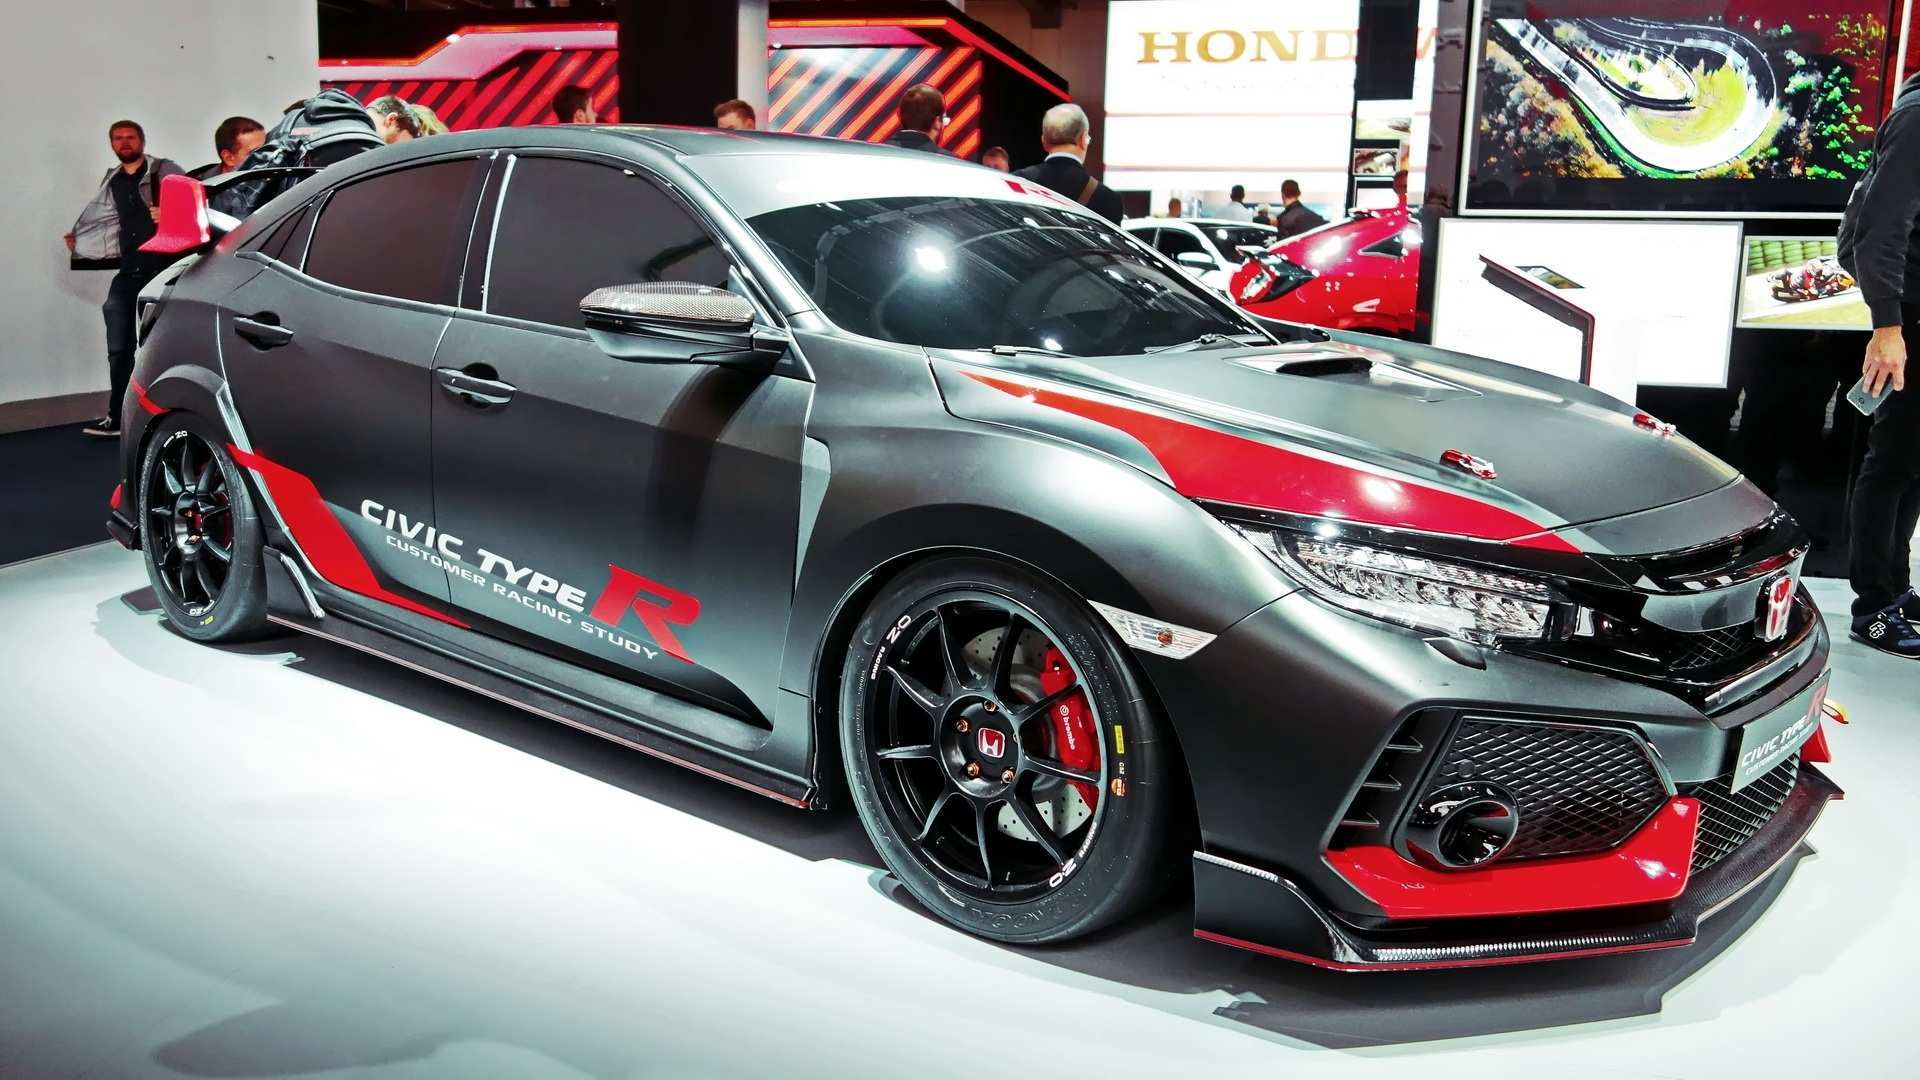 90 New 2019 Honda Accord Type R Pricing by 2019 Honda Accord Type R